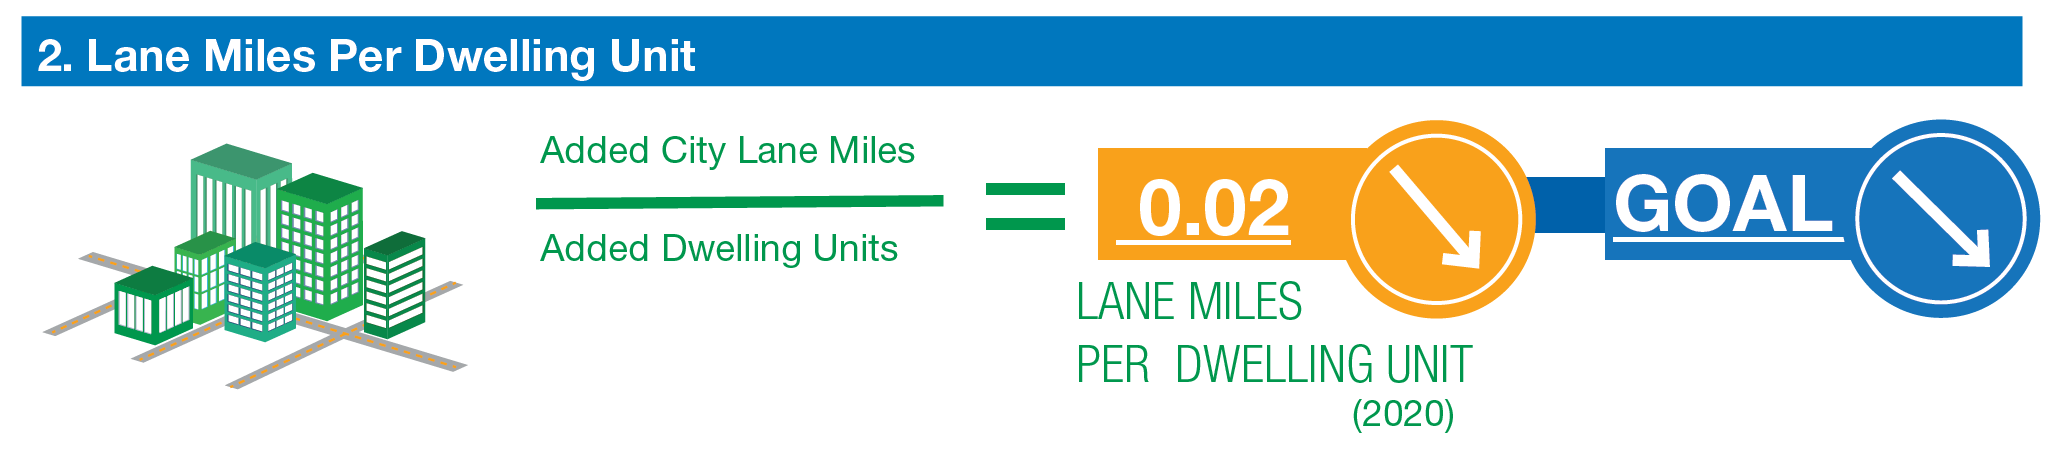 lane miles per dwelling unit trending down. goal to decrease